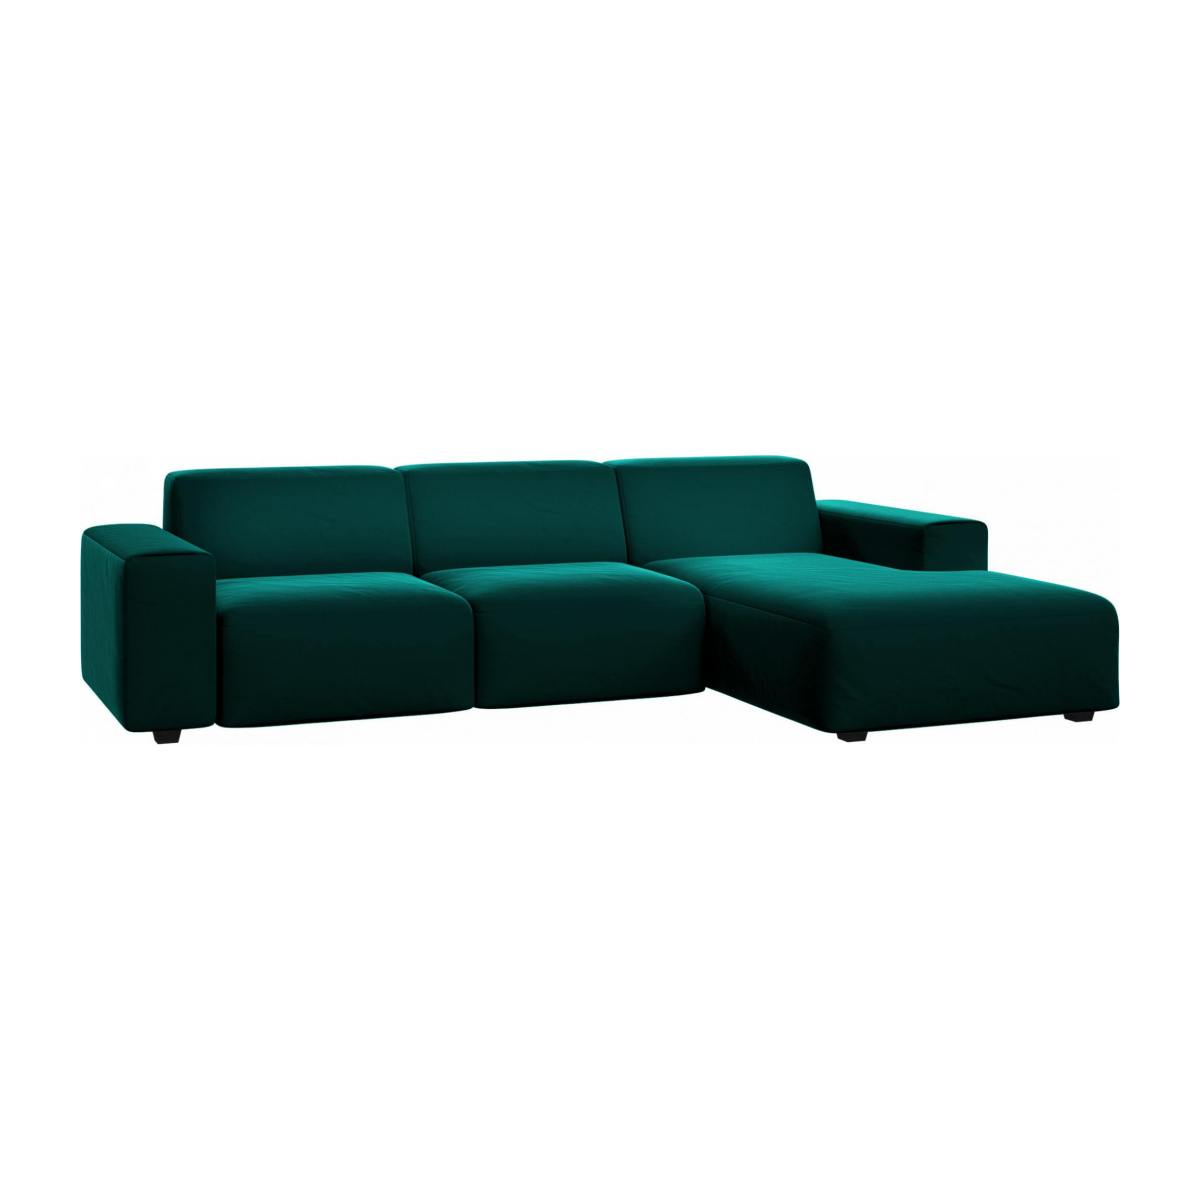 3 seater sofa with chaise longue on the right in Super Velvet fabric, petrol blue n°3